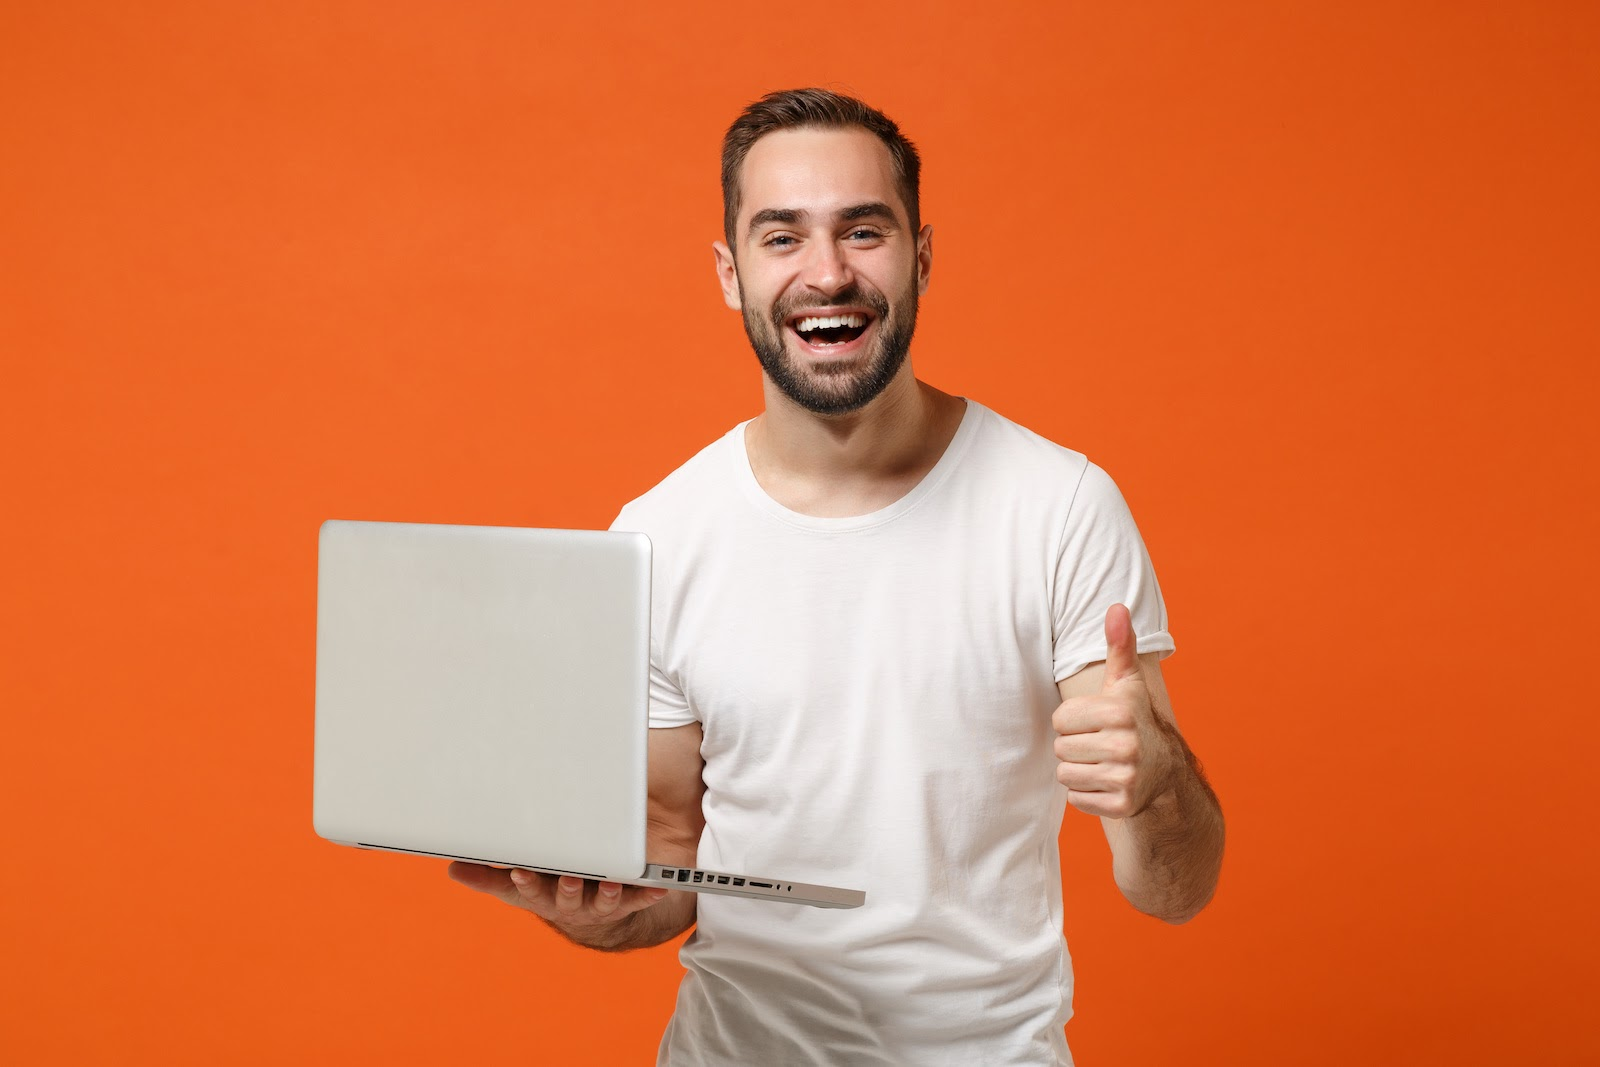 A man gives a thumbs up while participating in a virtual breakout session on his laptop